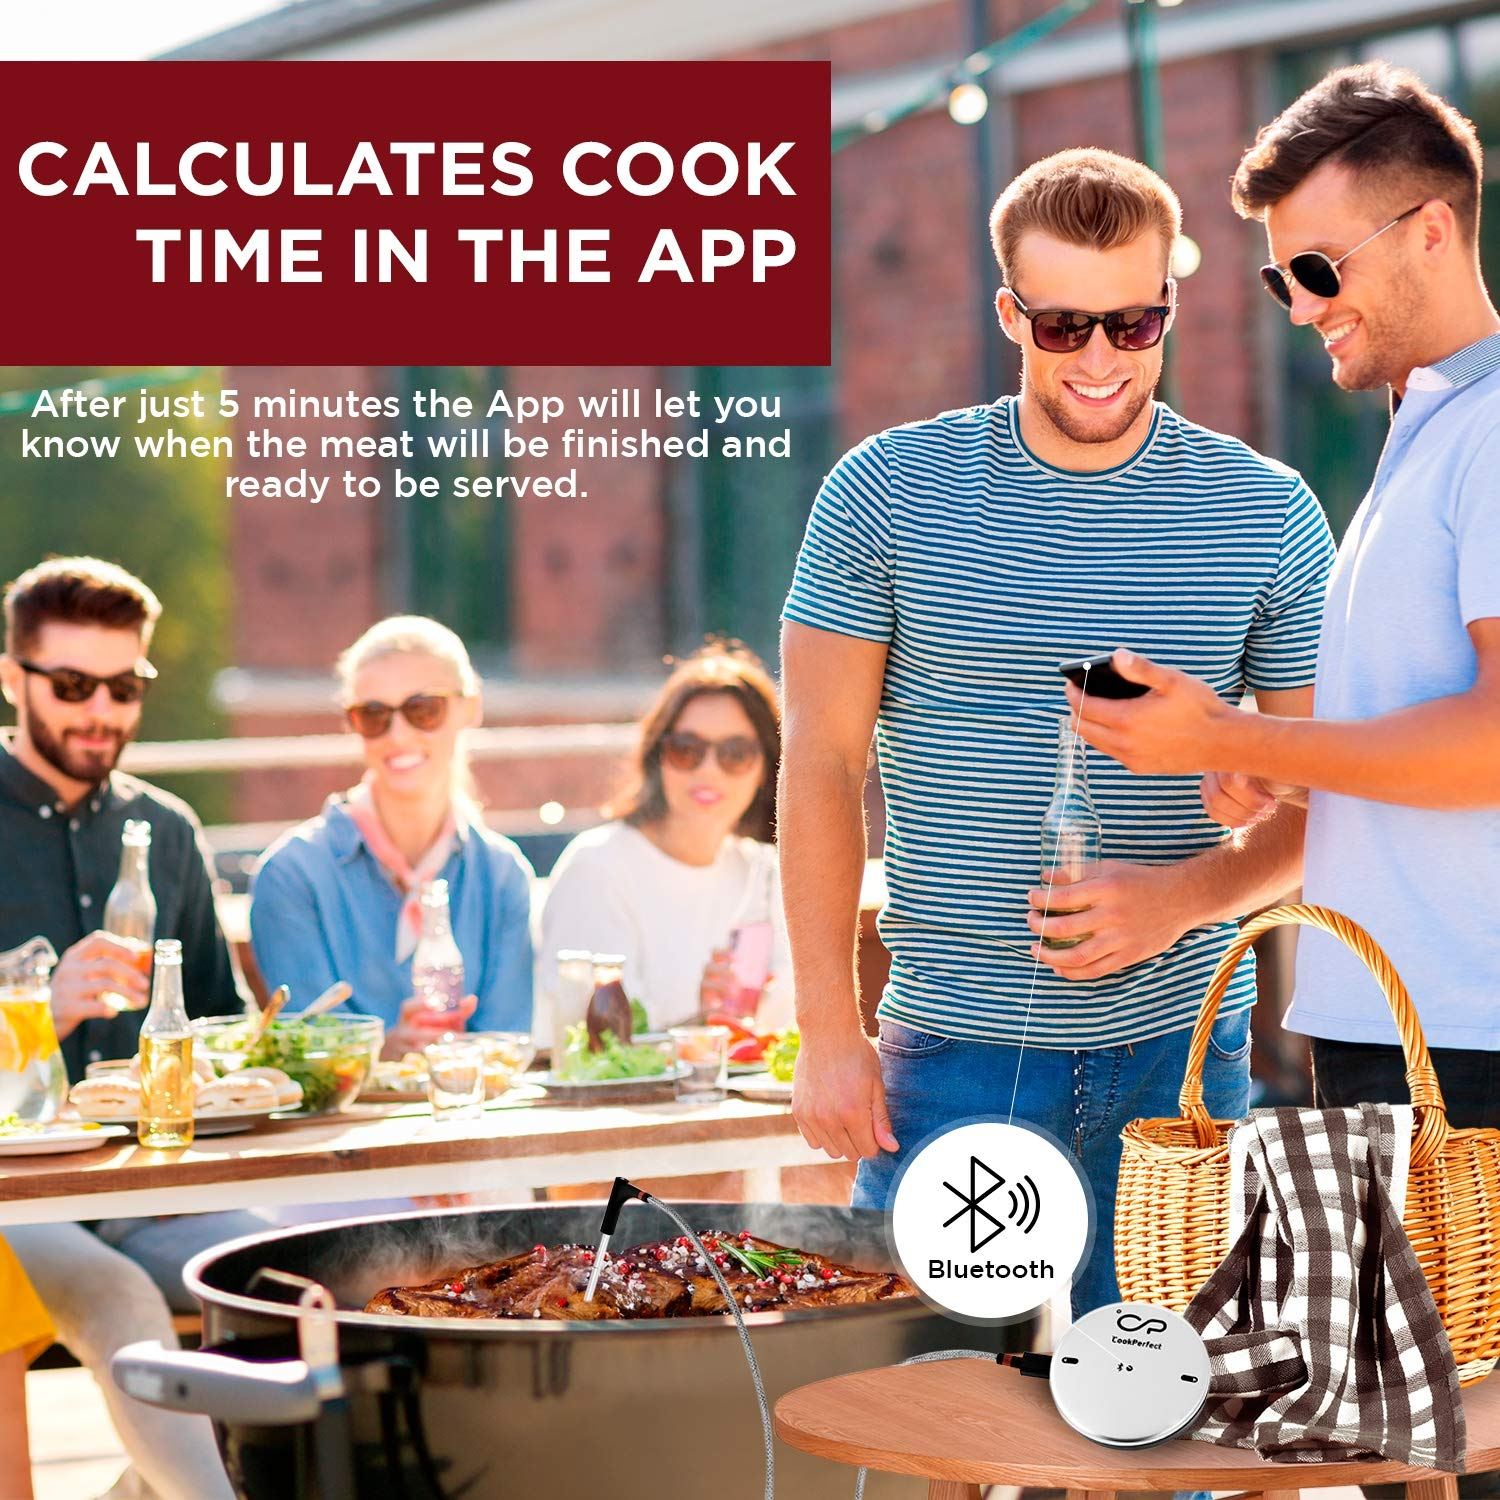 CookPerfect Wireless Meat Thermometer with 400ft Bluetooth Range | Automatic Core and Air Temperature Readings | for BBQ, Oven and Grill Cooking (1 Probe Included) by CookPerfect (Image #6)